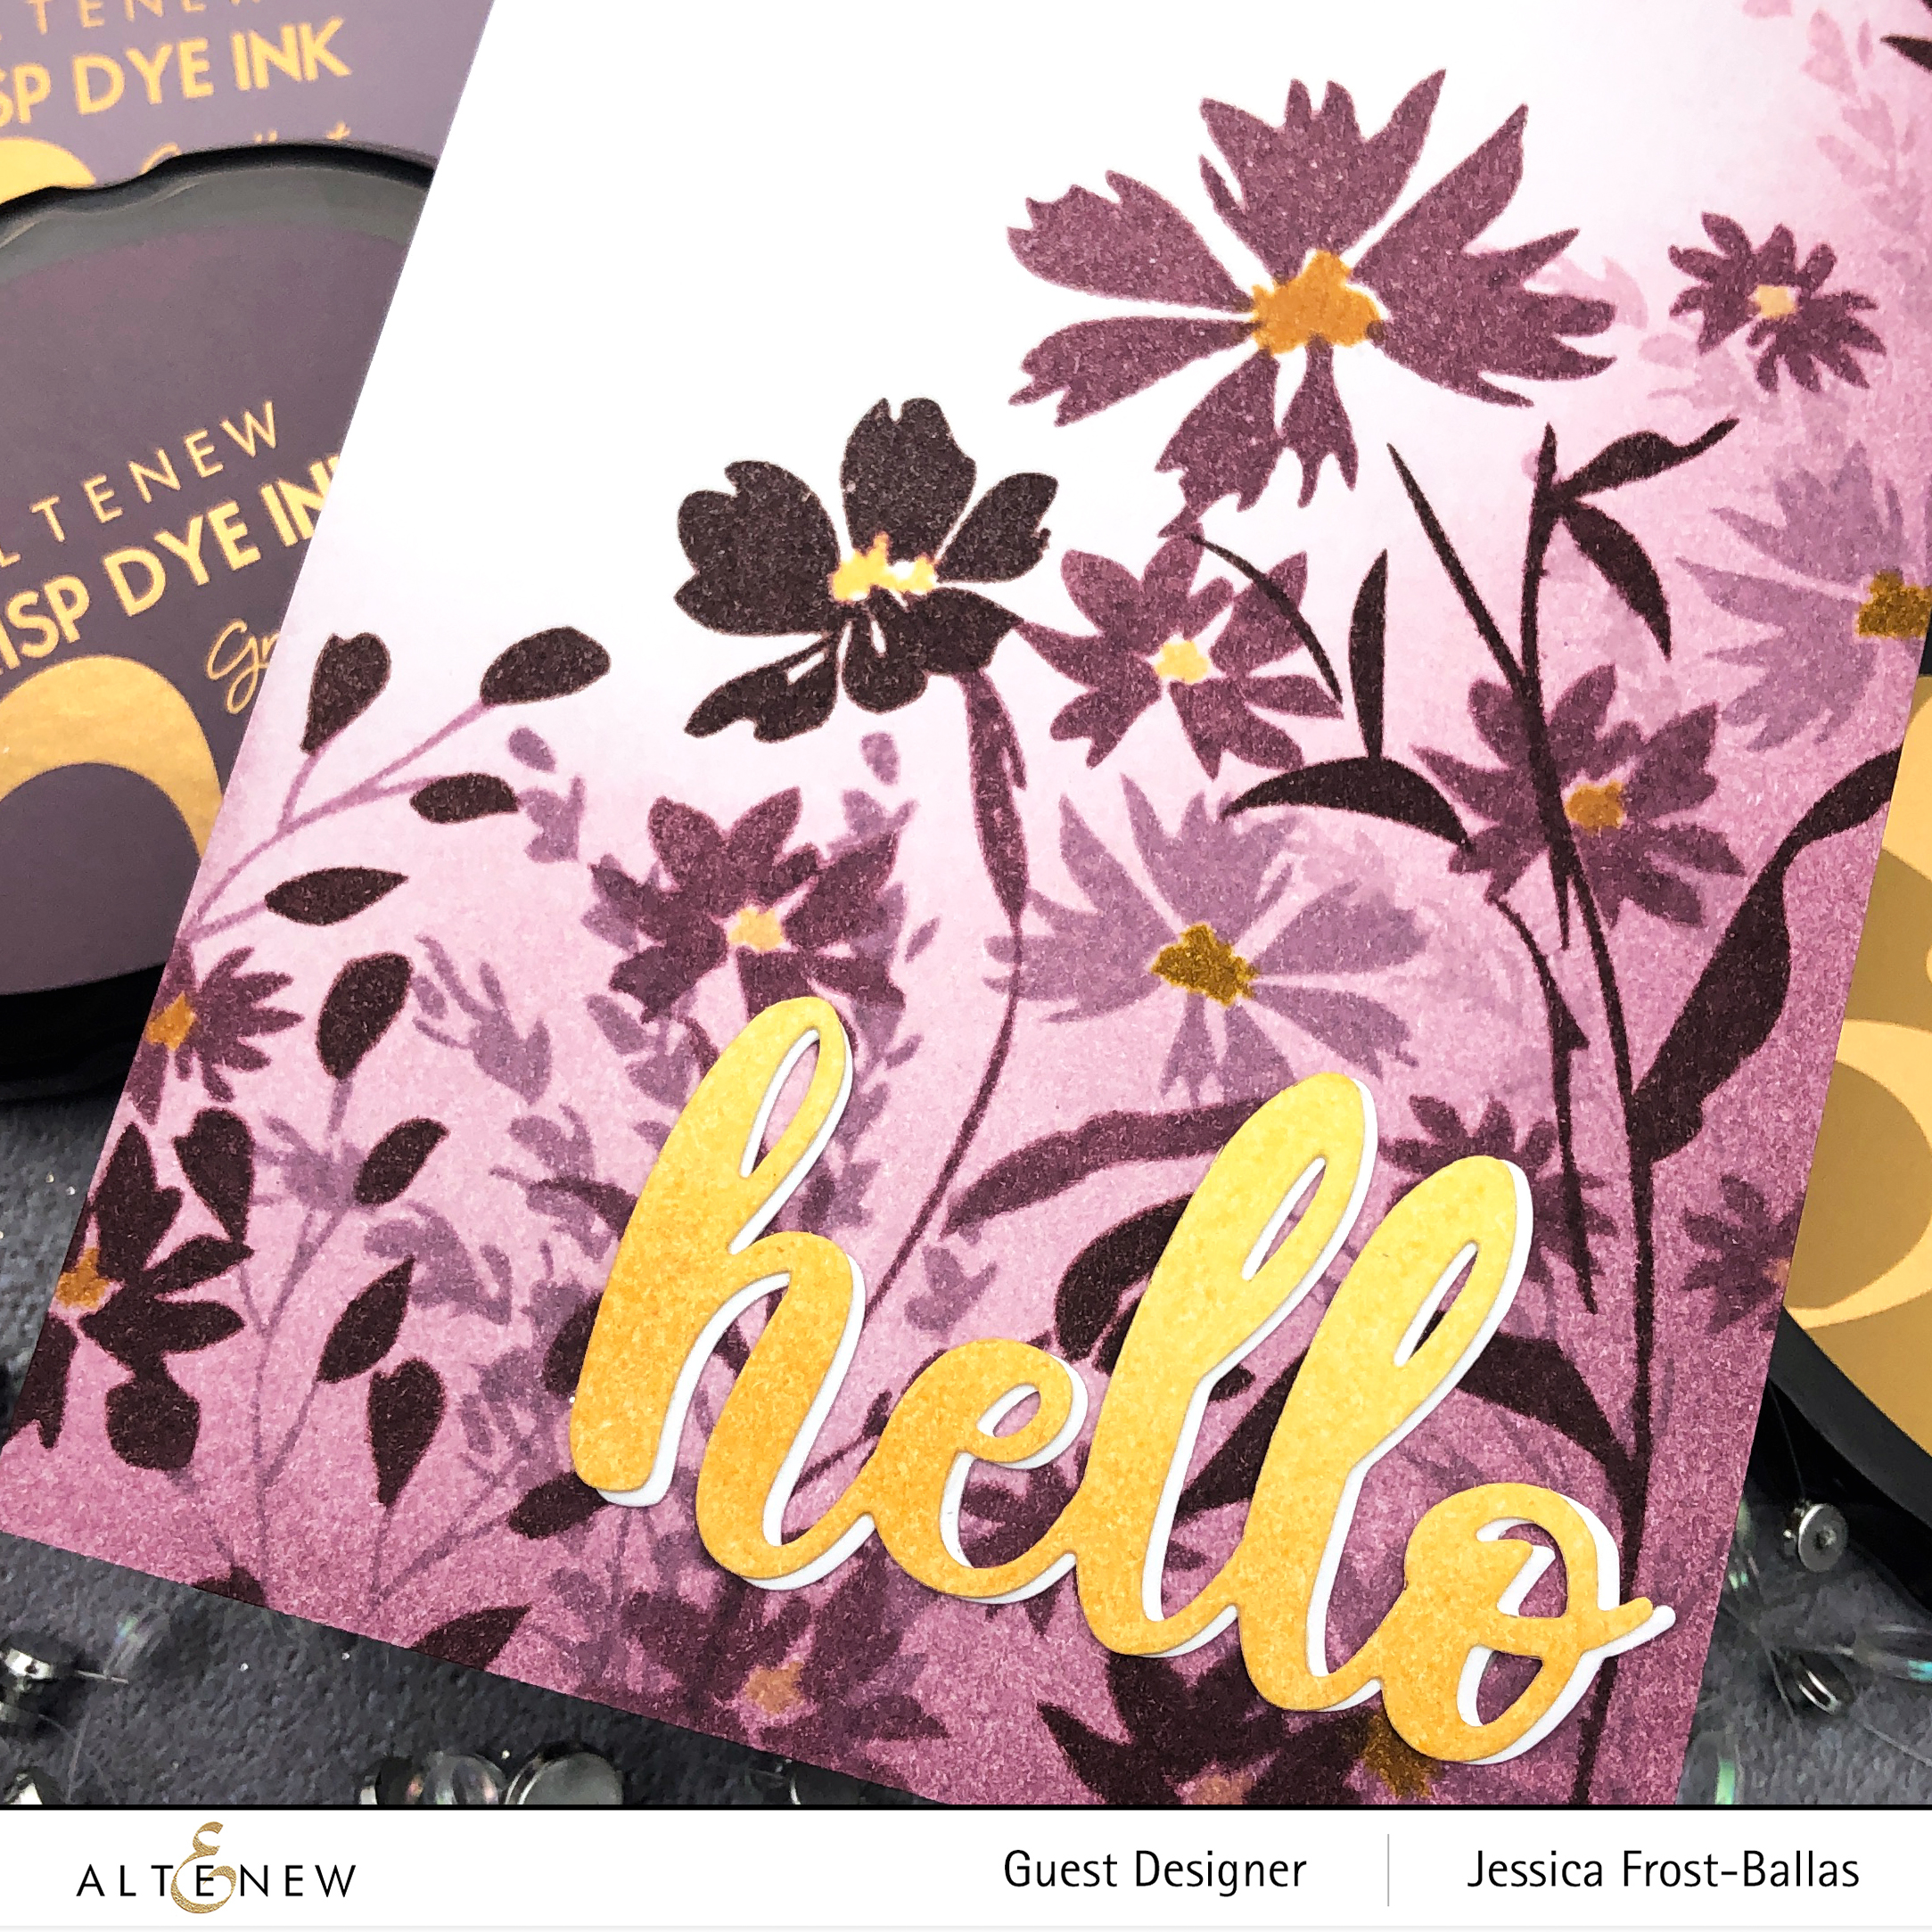 Sugarplums and Fall Harvest Inks by Jessica Frost-Ballas for Altenew